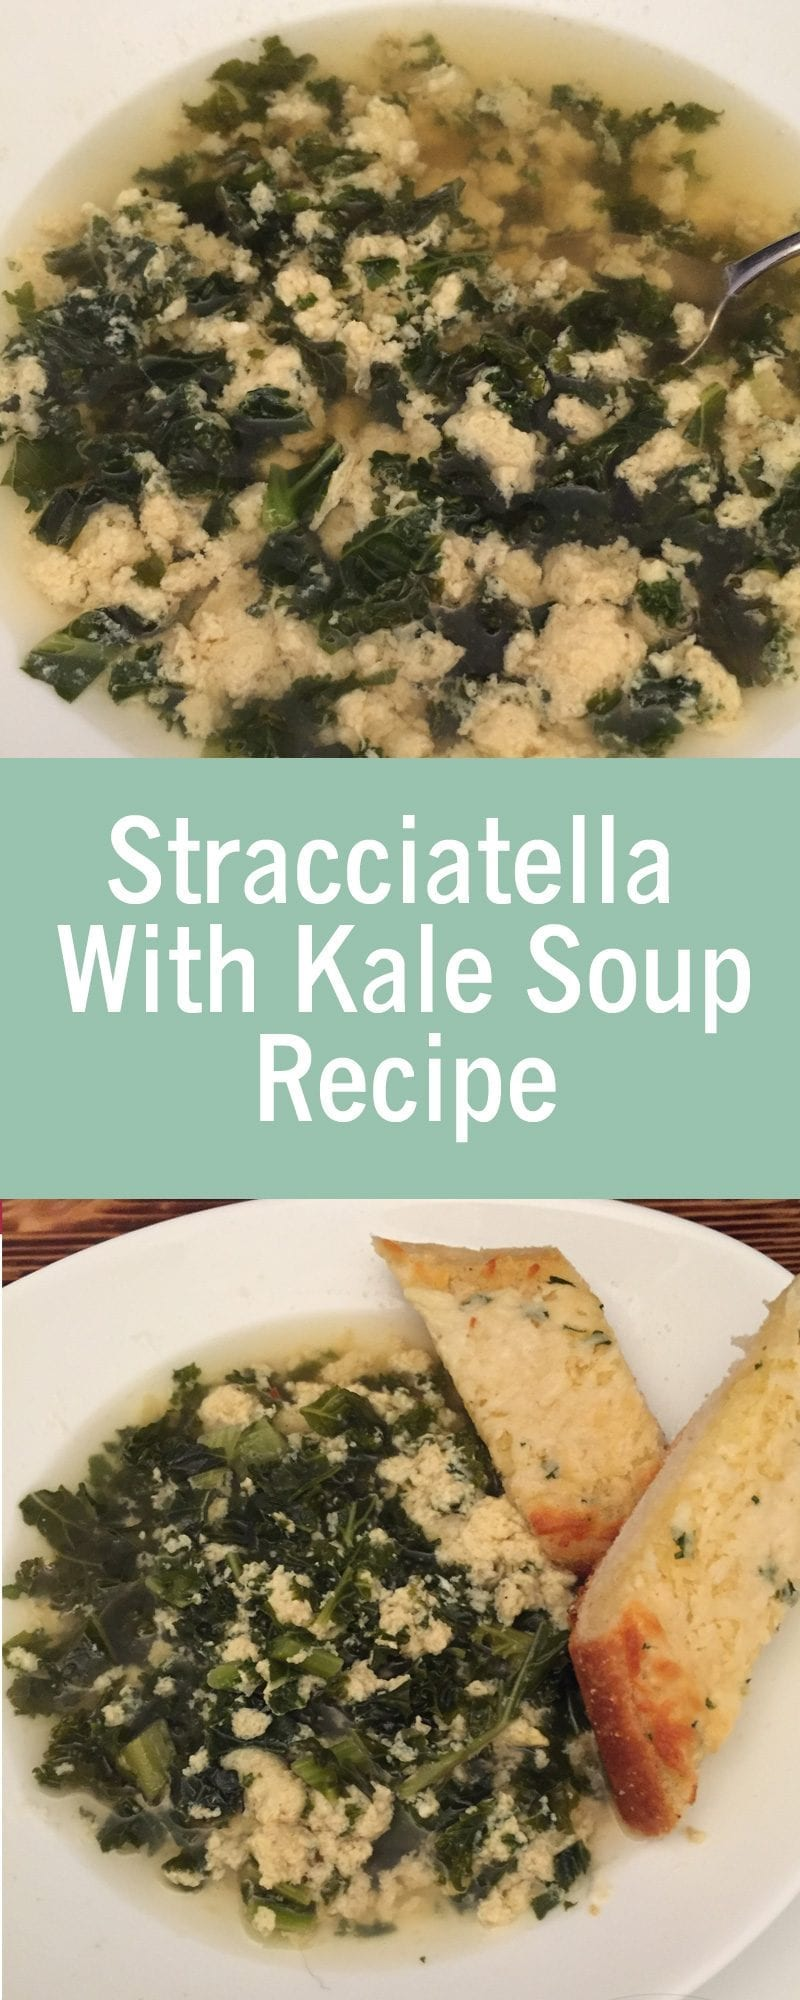 Stracciatella With Kale Soup Recipe